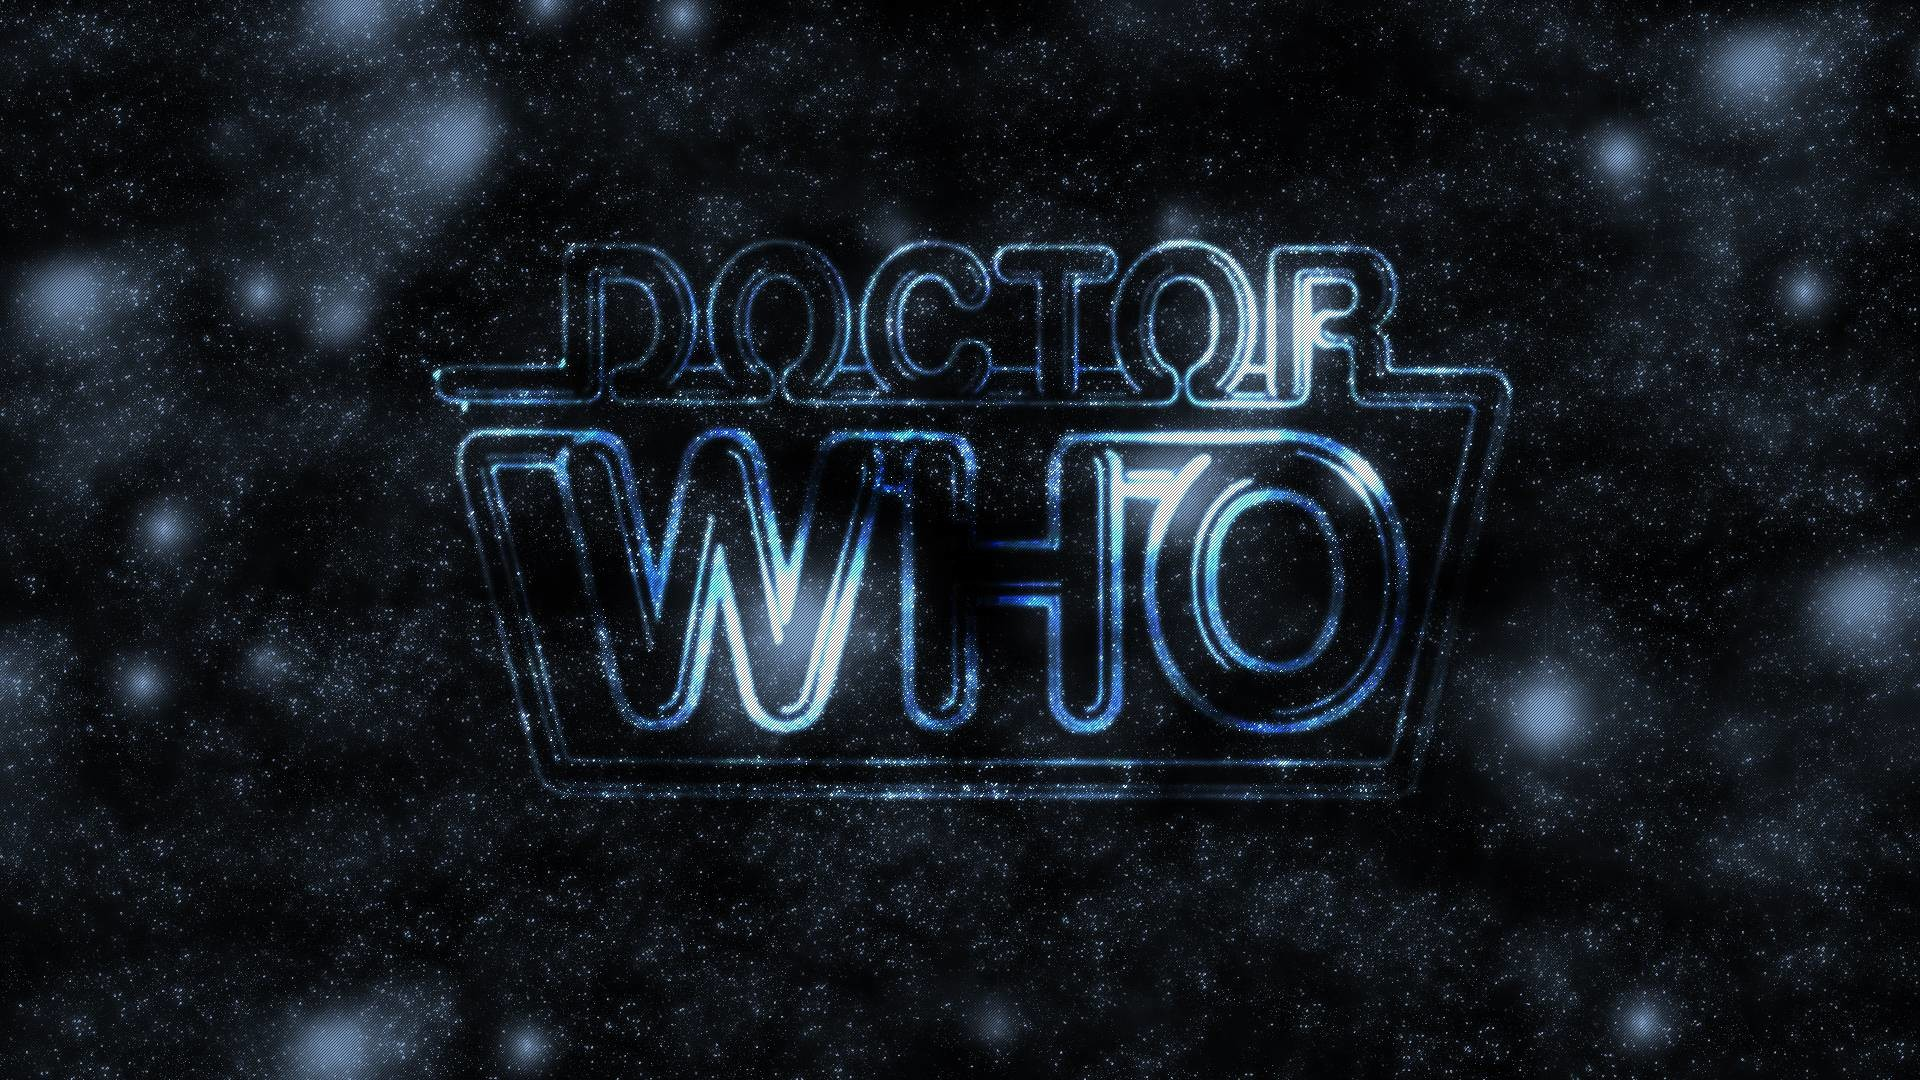 The Doctor in the Stars HD Wallpaper   Download HD Wallpaper, High .